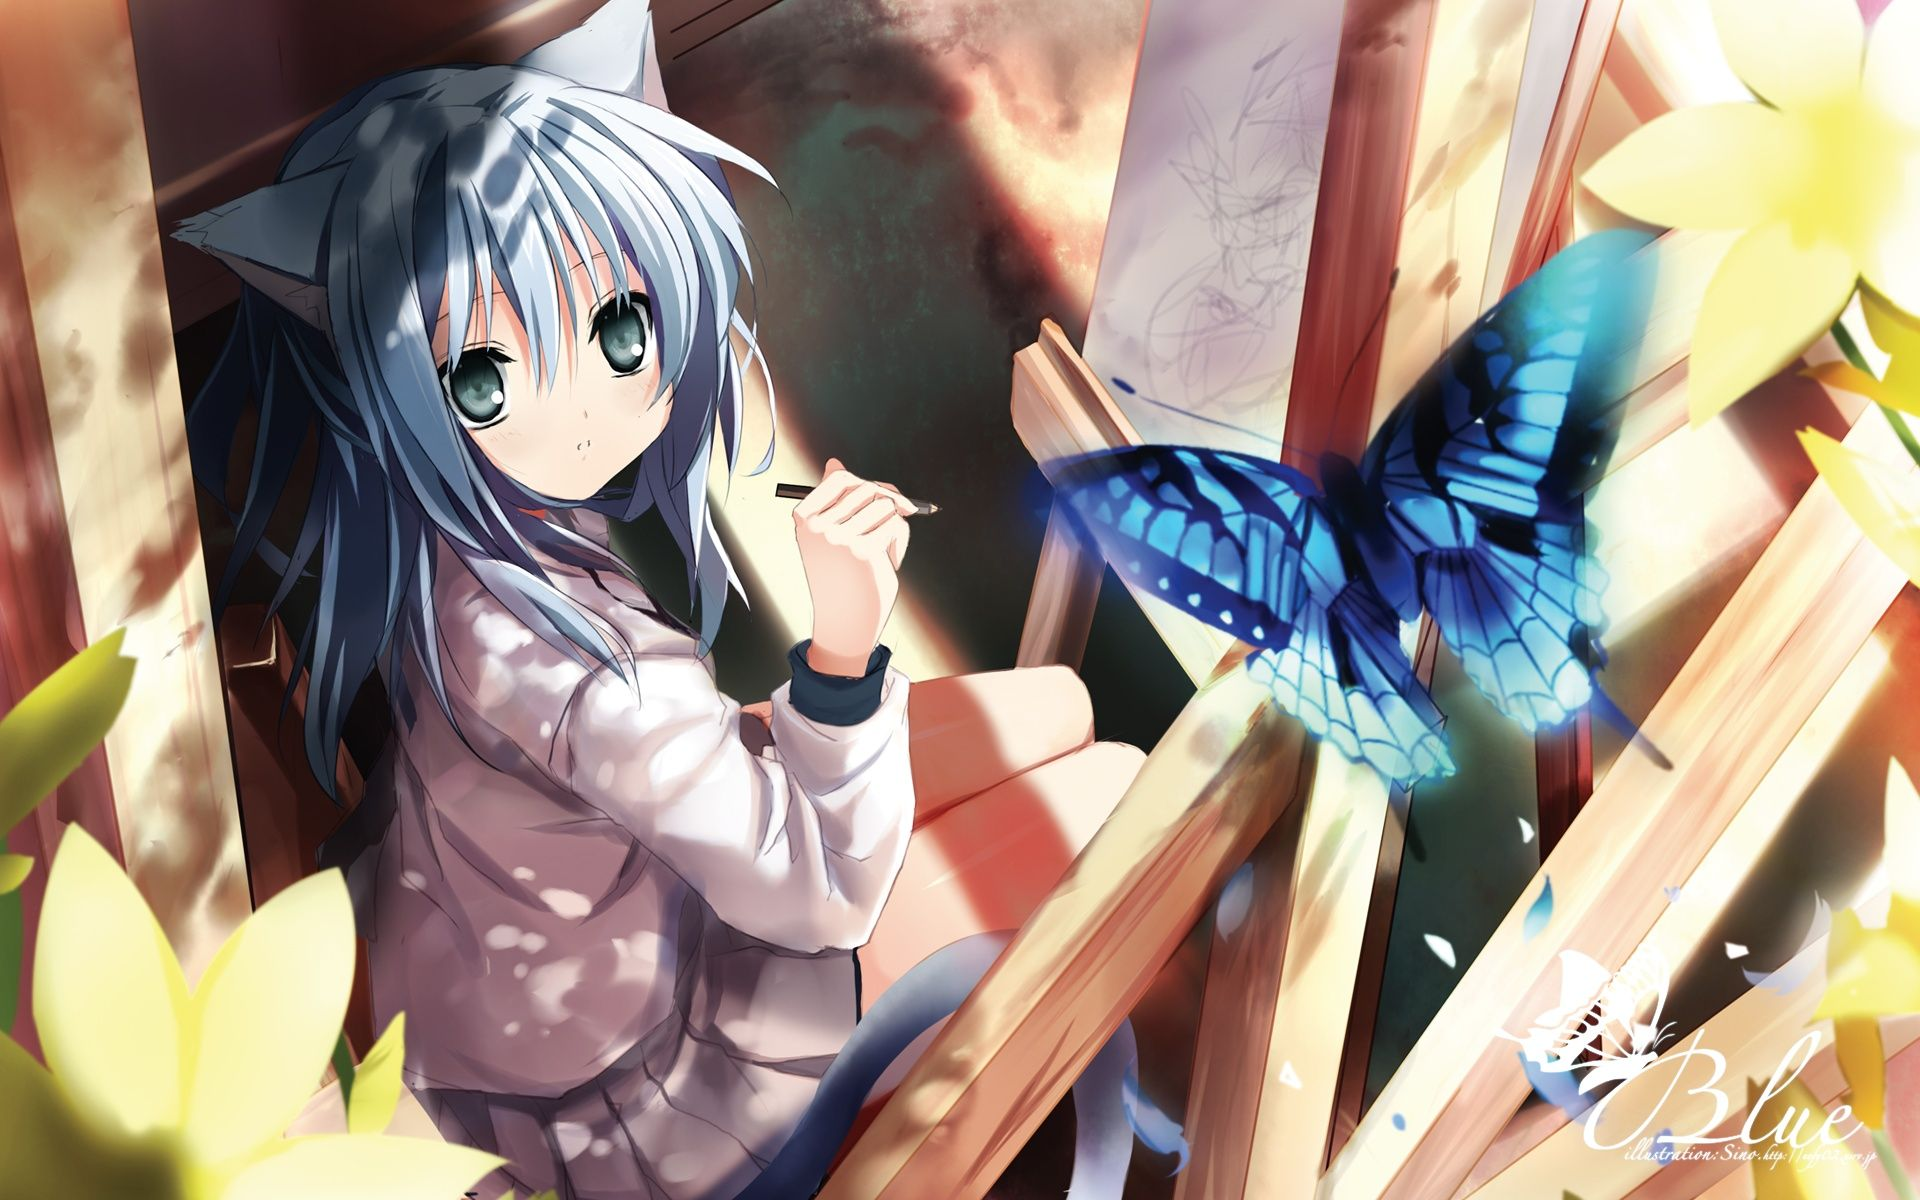 neko anime girl wallpaper anime neko girl wallpaper